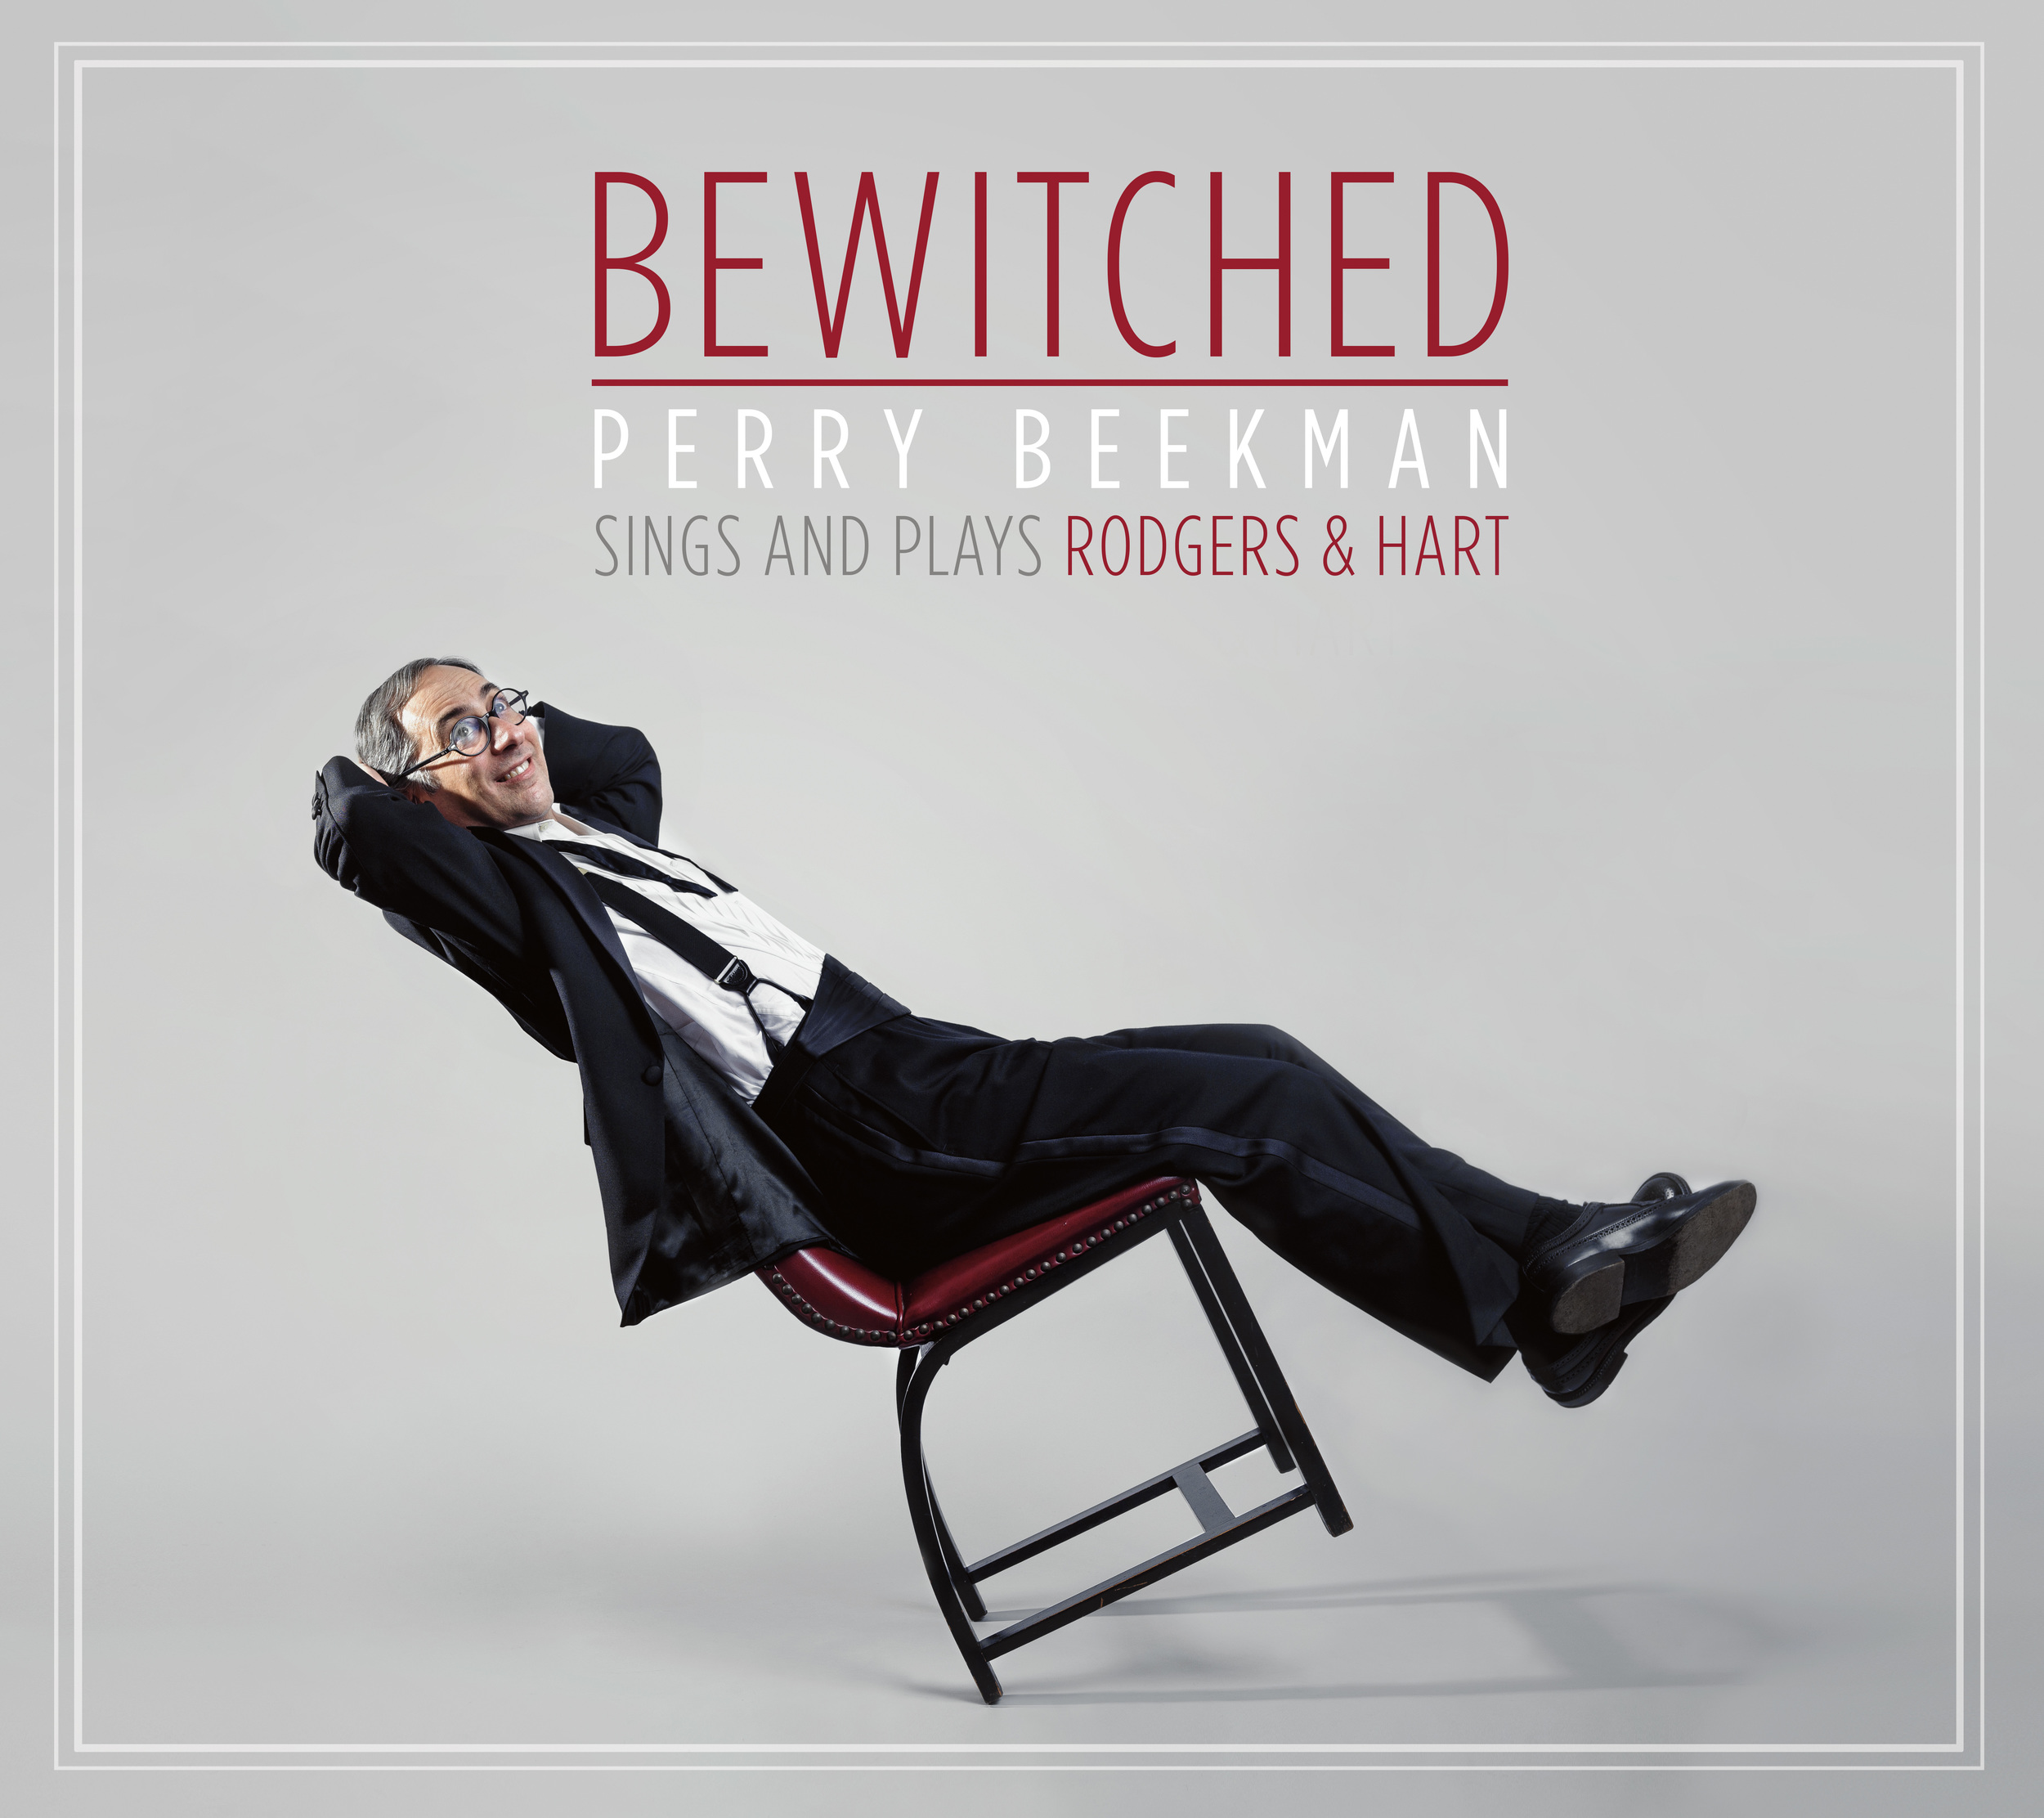 Bewitched Album Cover.jpg